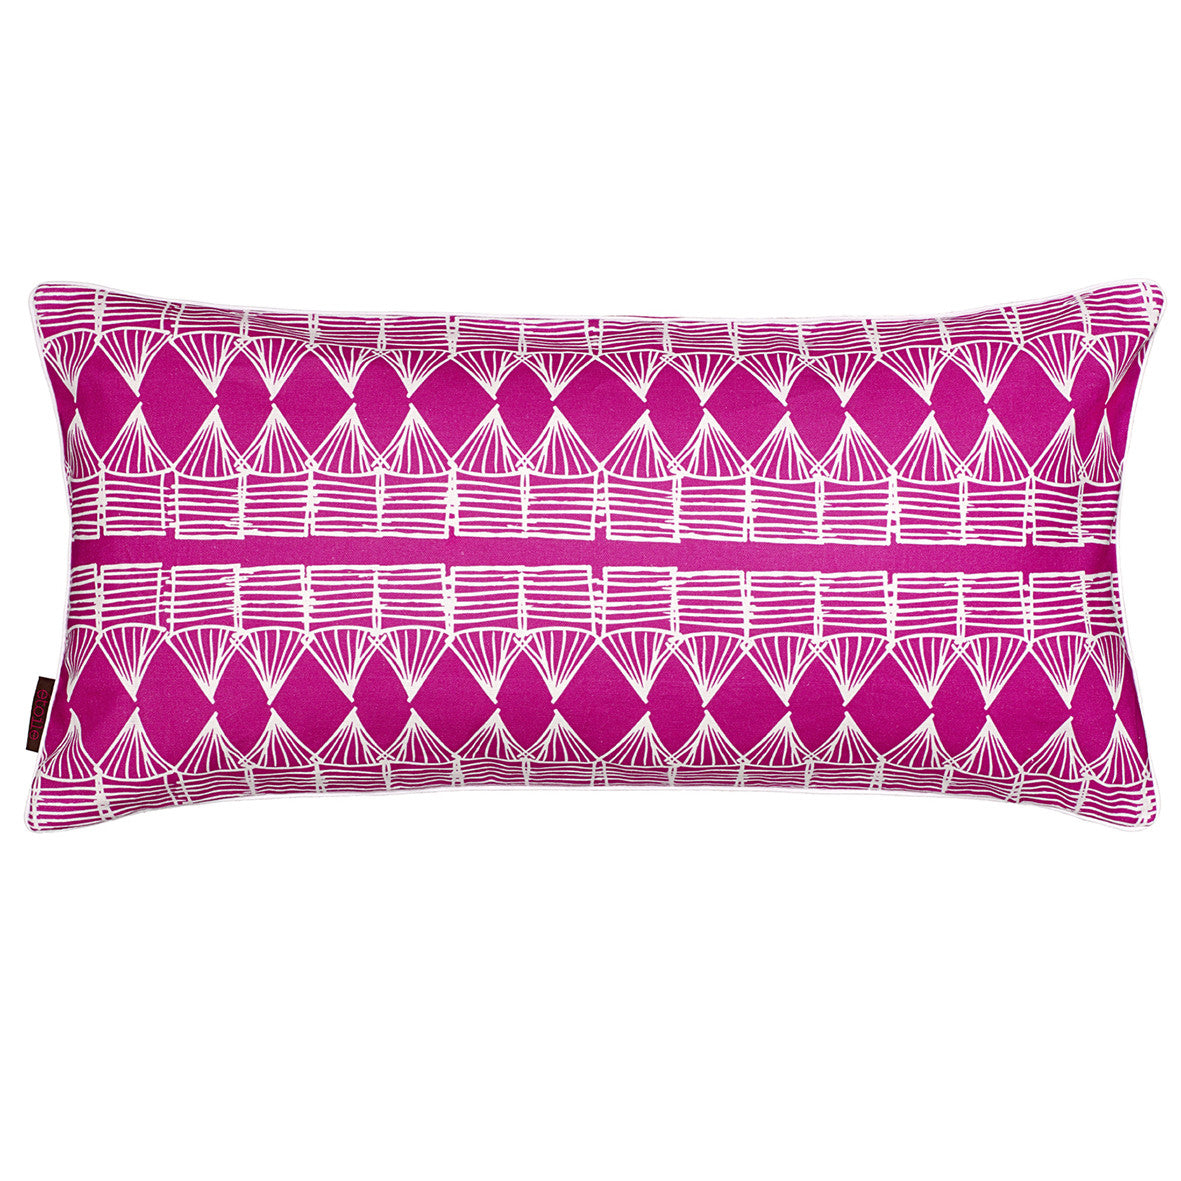 "Tiki Huts Pattern Rectangle Lumbar Throw Pillow Linen in Hot Fuchsia Pink 30x60cm 12x24"" canada USA"